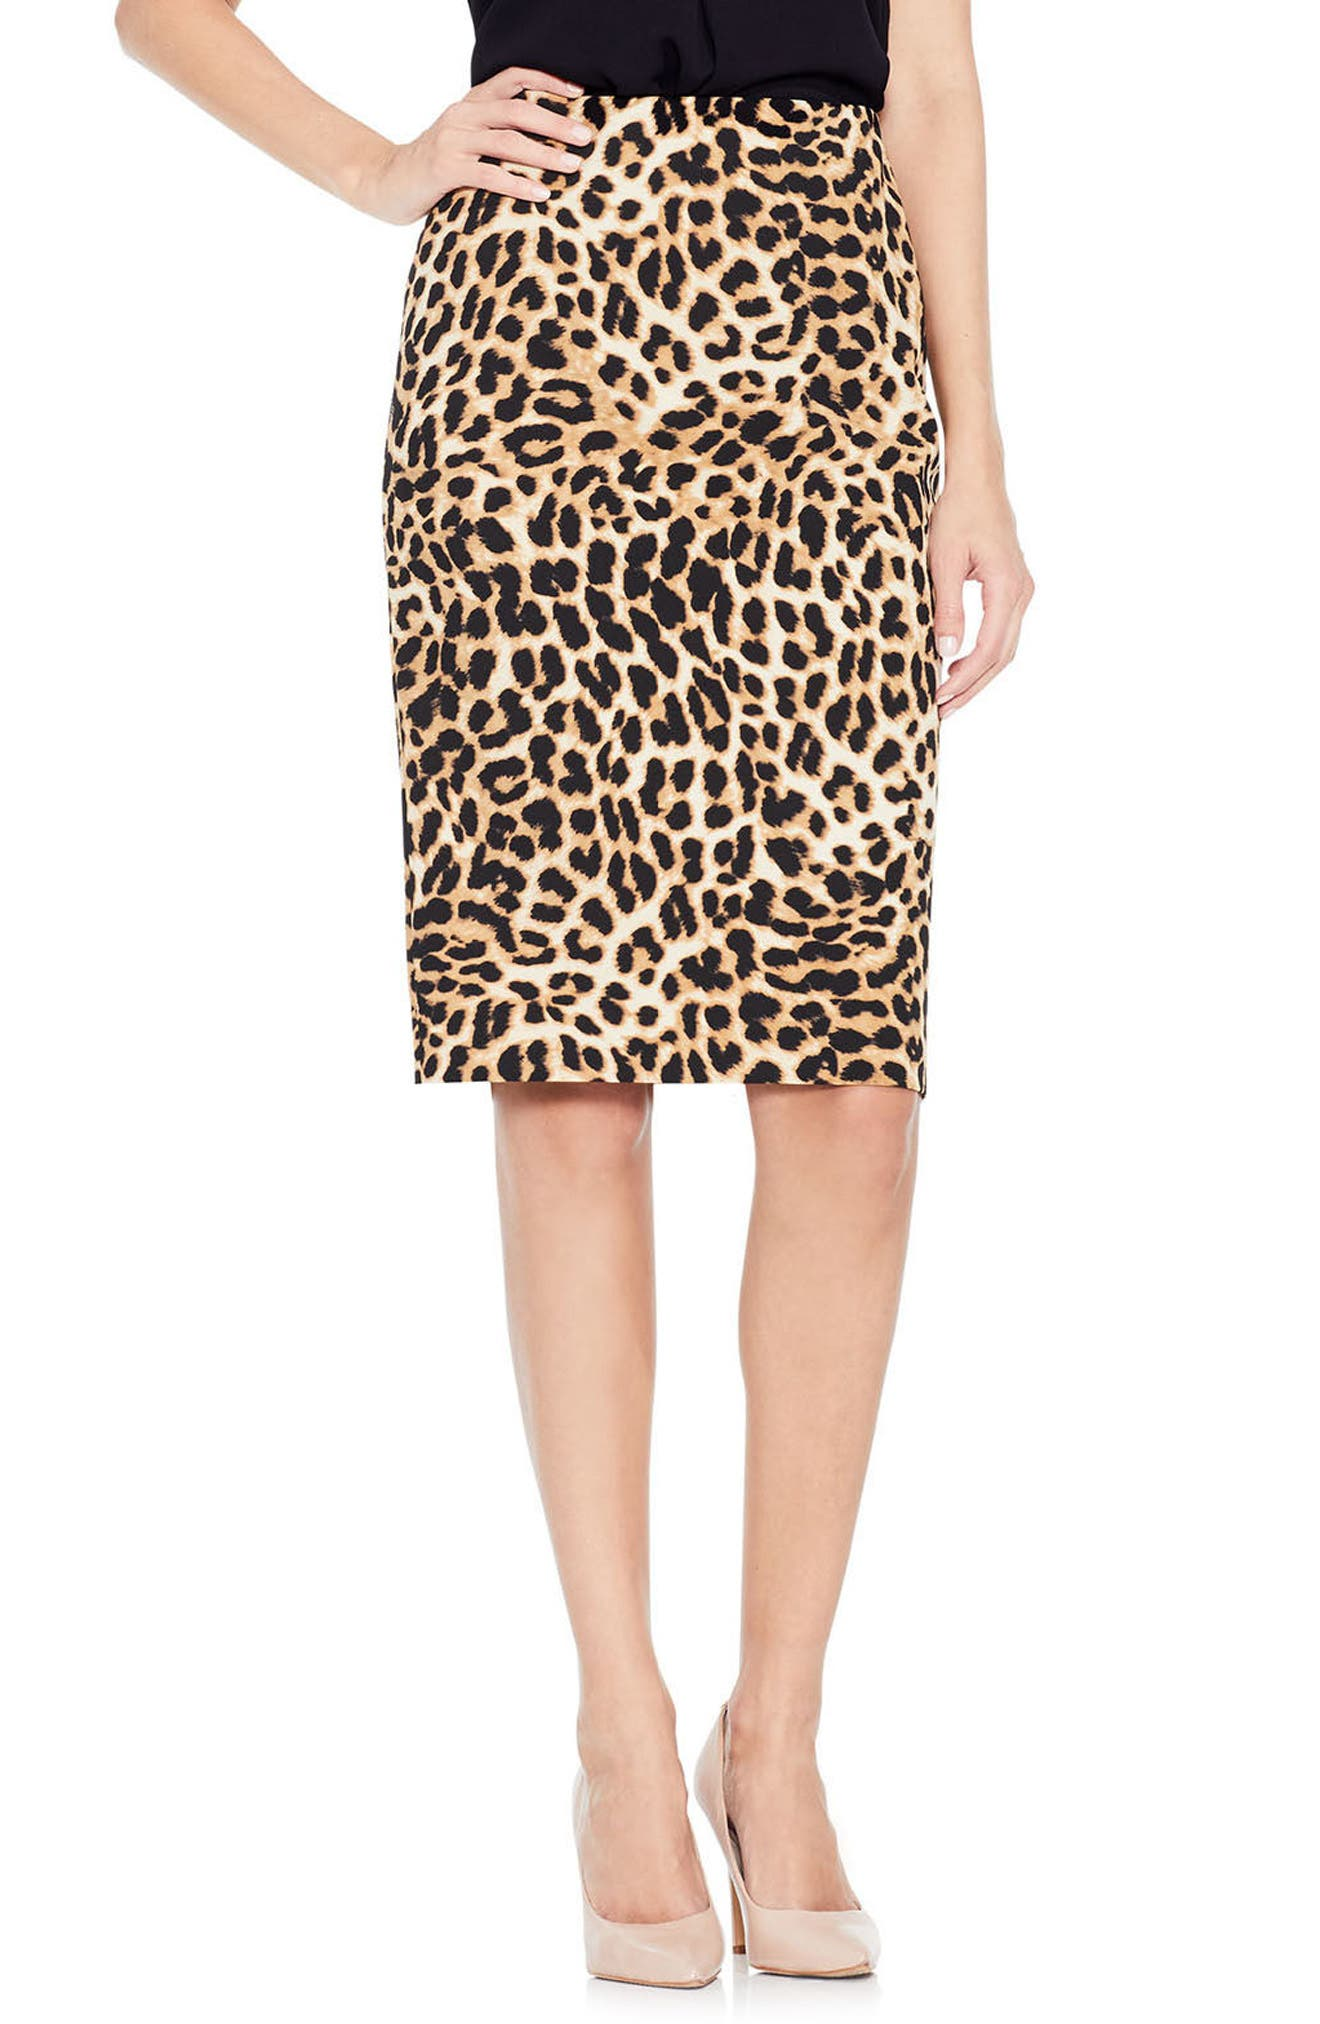 Vince Camuto Animal Print Pencil Skirt